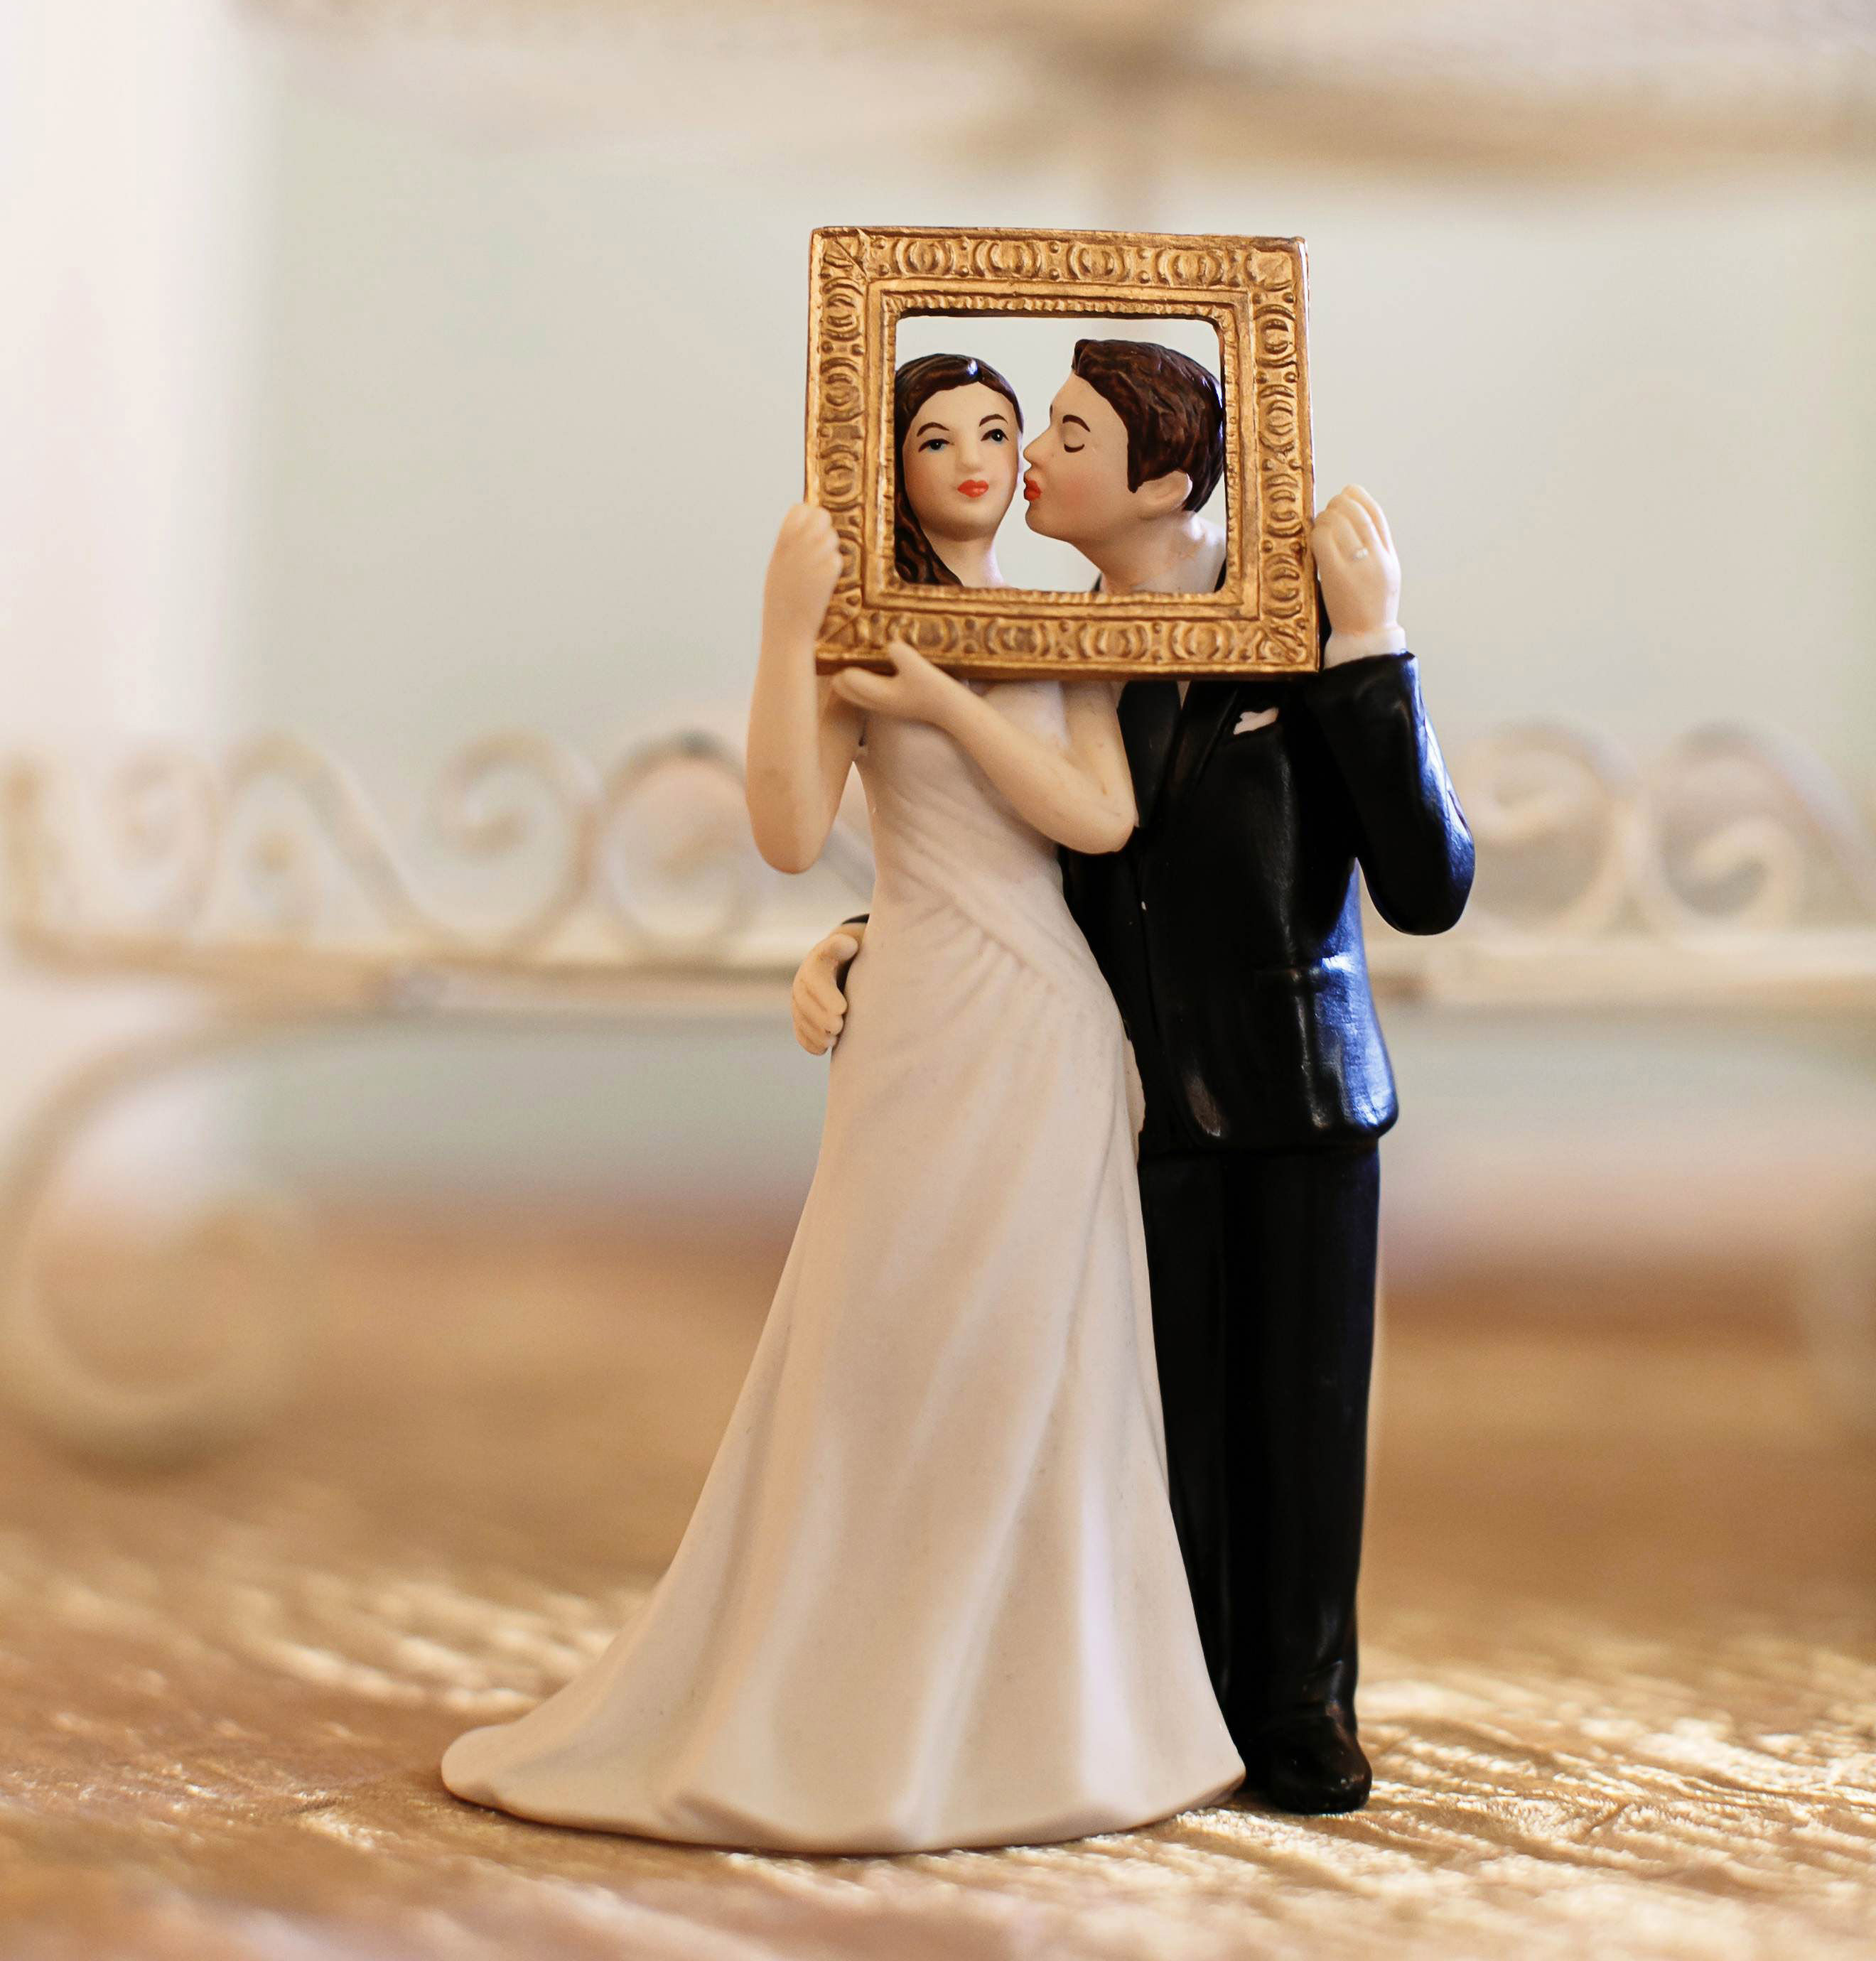 Wedding Cake Toppers: 7 Fun and Unique Examples - Inside Weddings